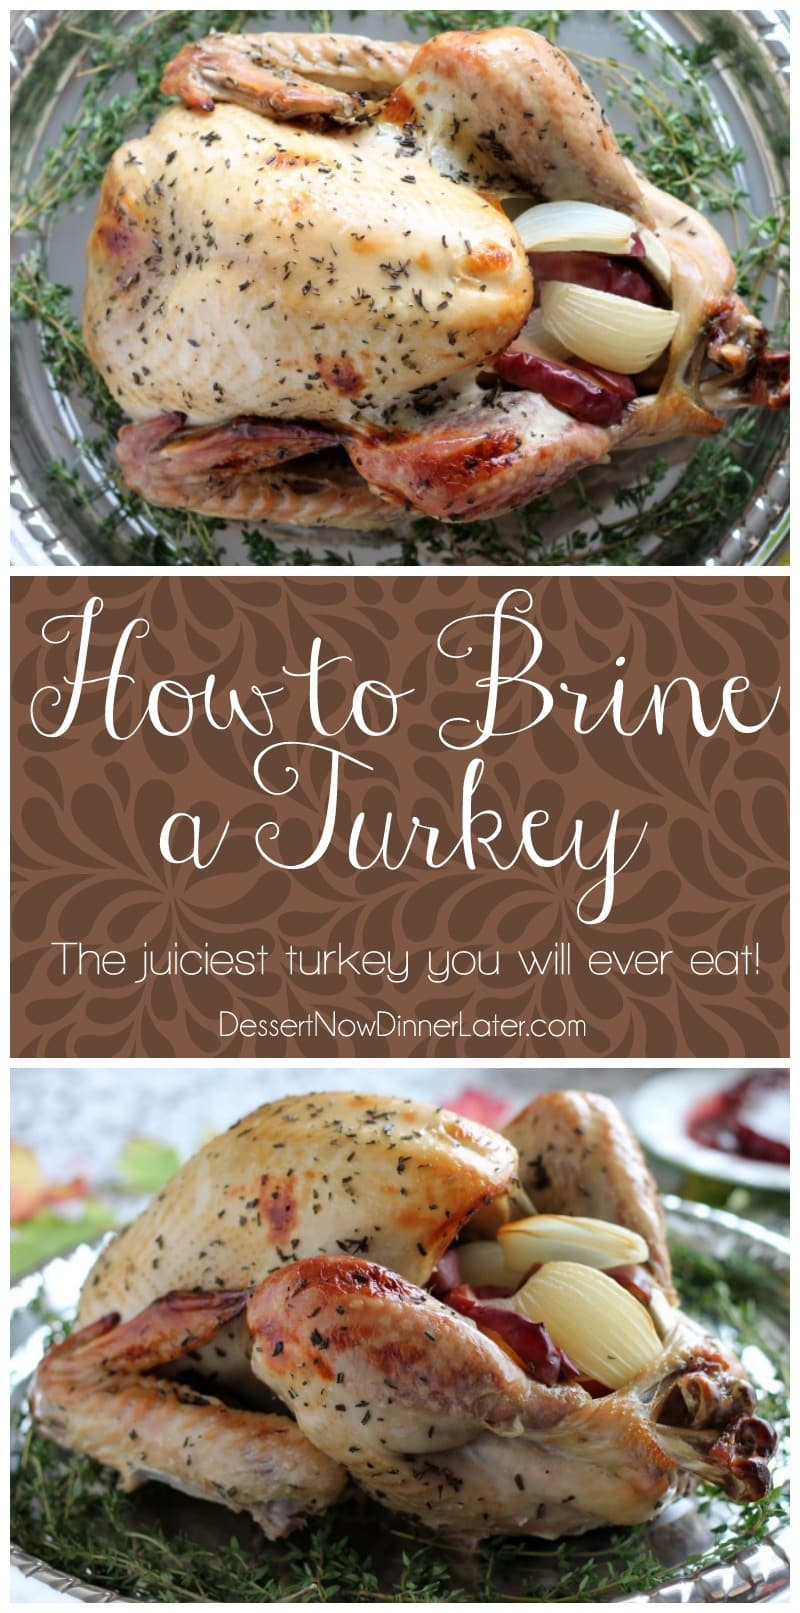 Step-by-step photo instructions on how to brine and cook a turkey to juicy perfection! From DessertNowDinnerLater.com